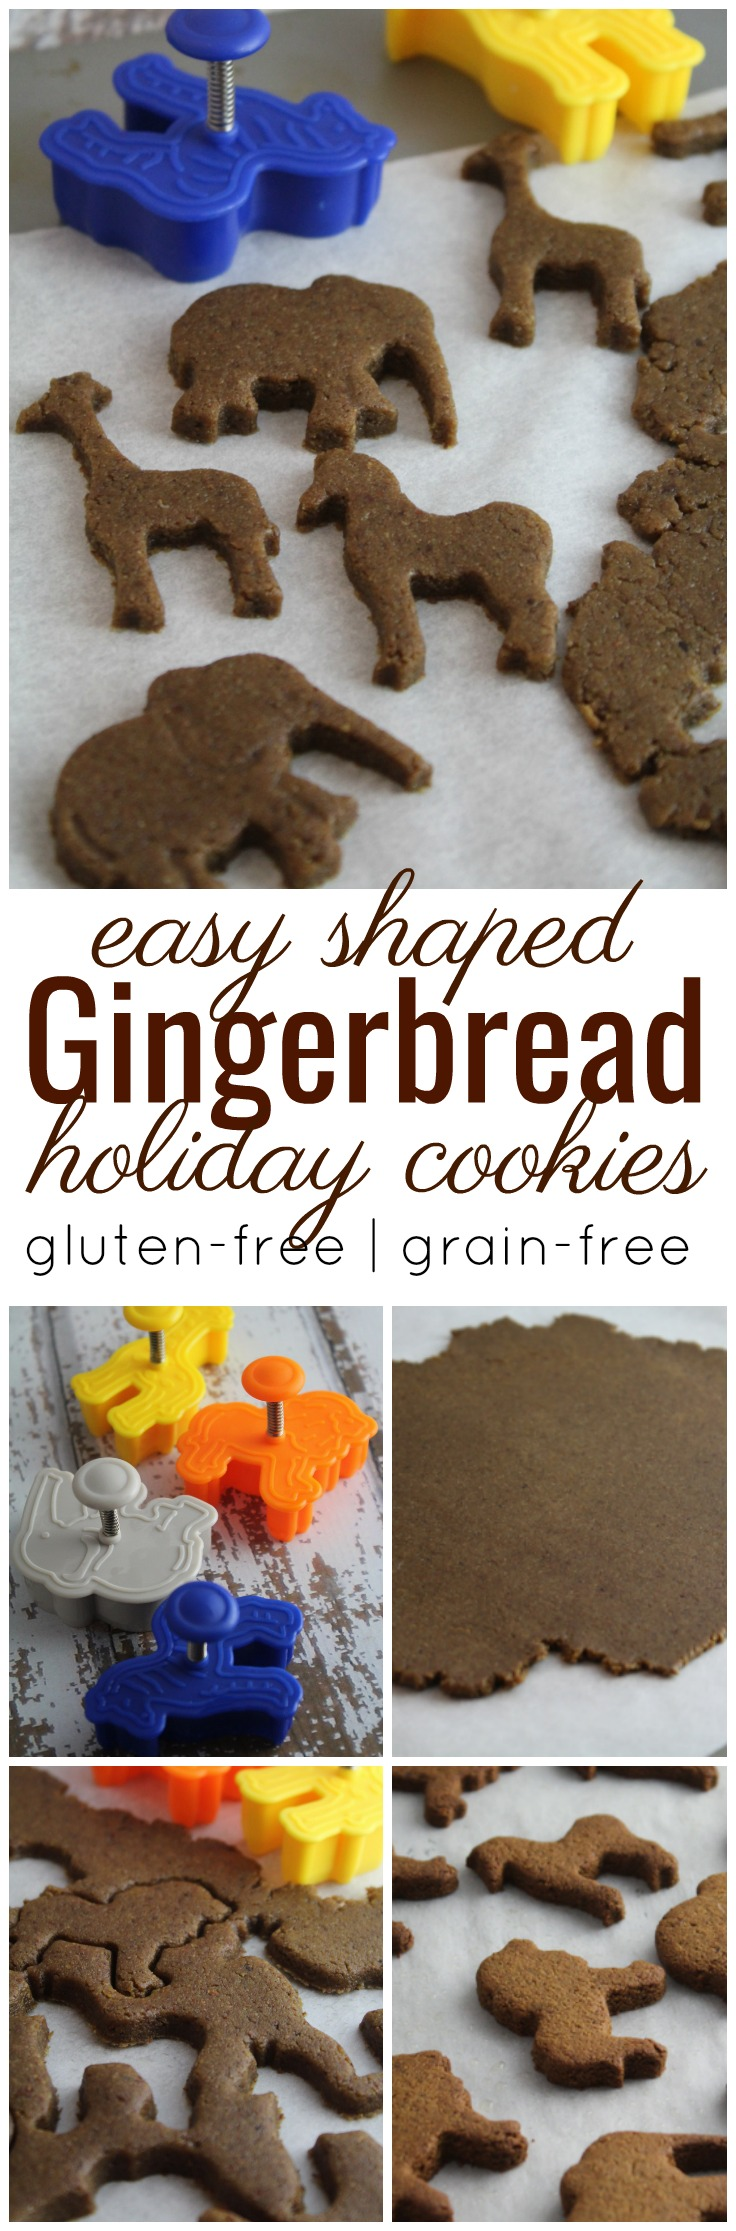 Deliciously adorable rolled gingerbread cookies that are simple to make, bake up quickly and are gluten-free and grain-free.    #holiday #christmas #gluten-free #grain-free #cookies